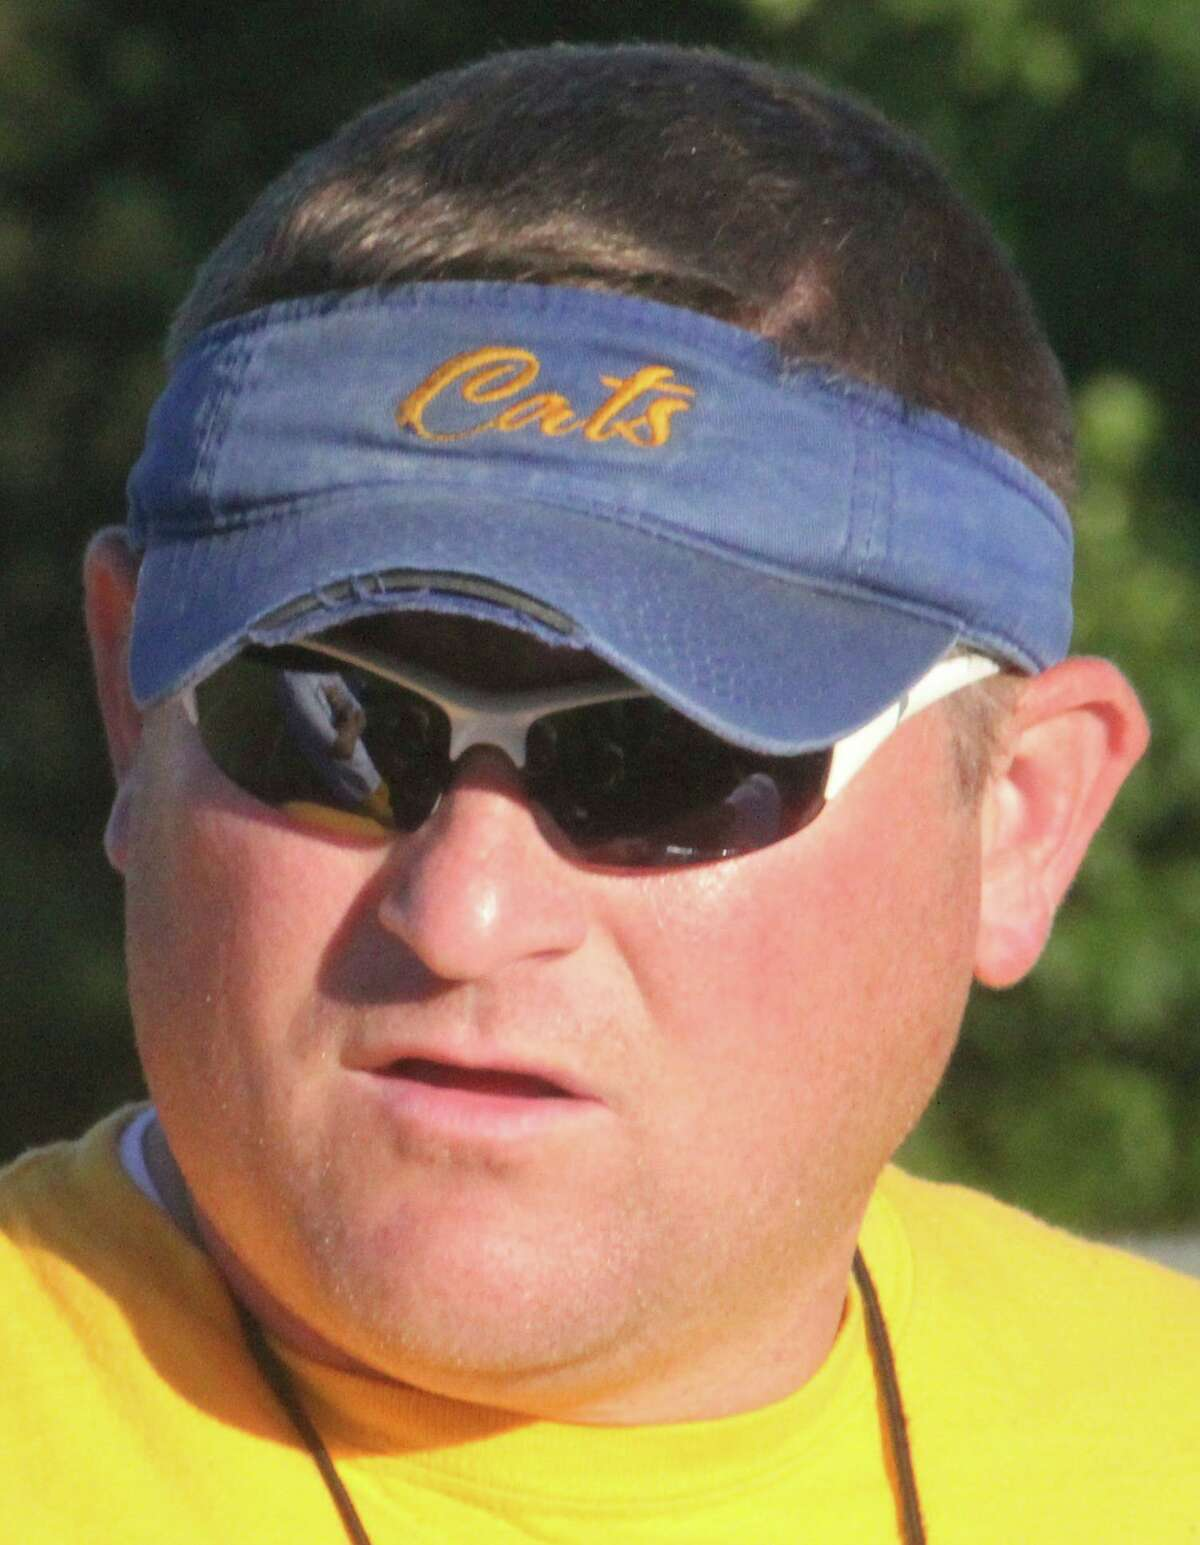 Evart coach Pat Craven has expressed reservations with the new playoff system. (Herald Review file photo)